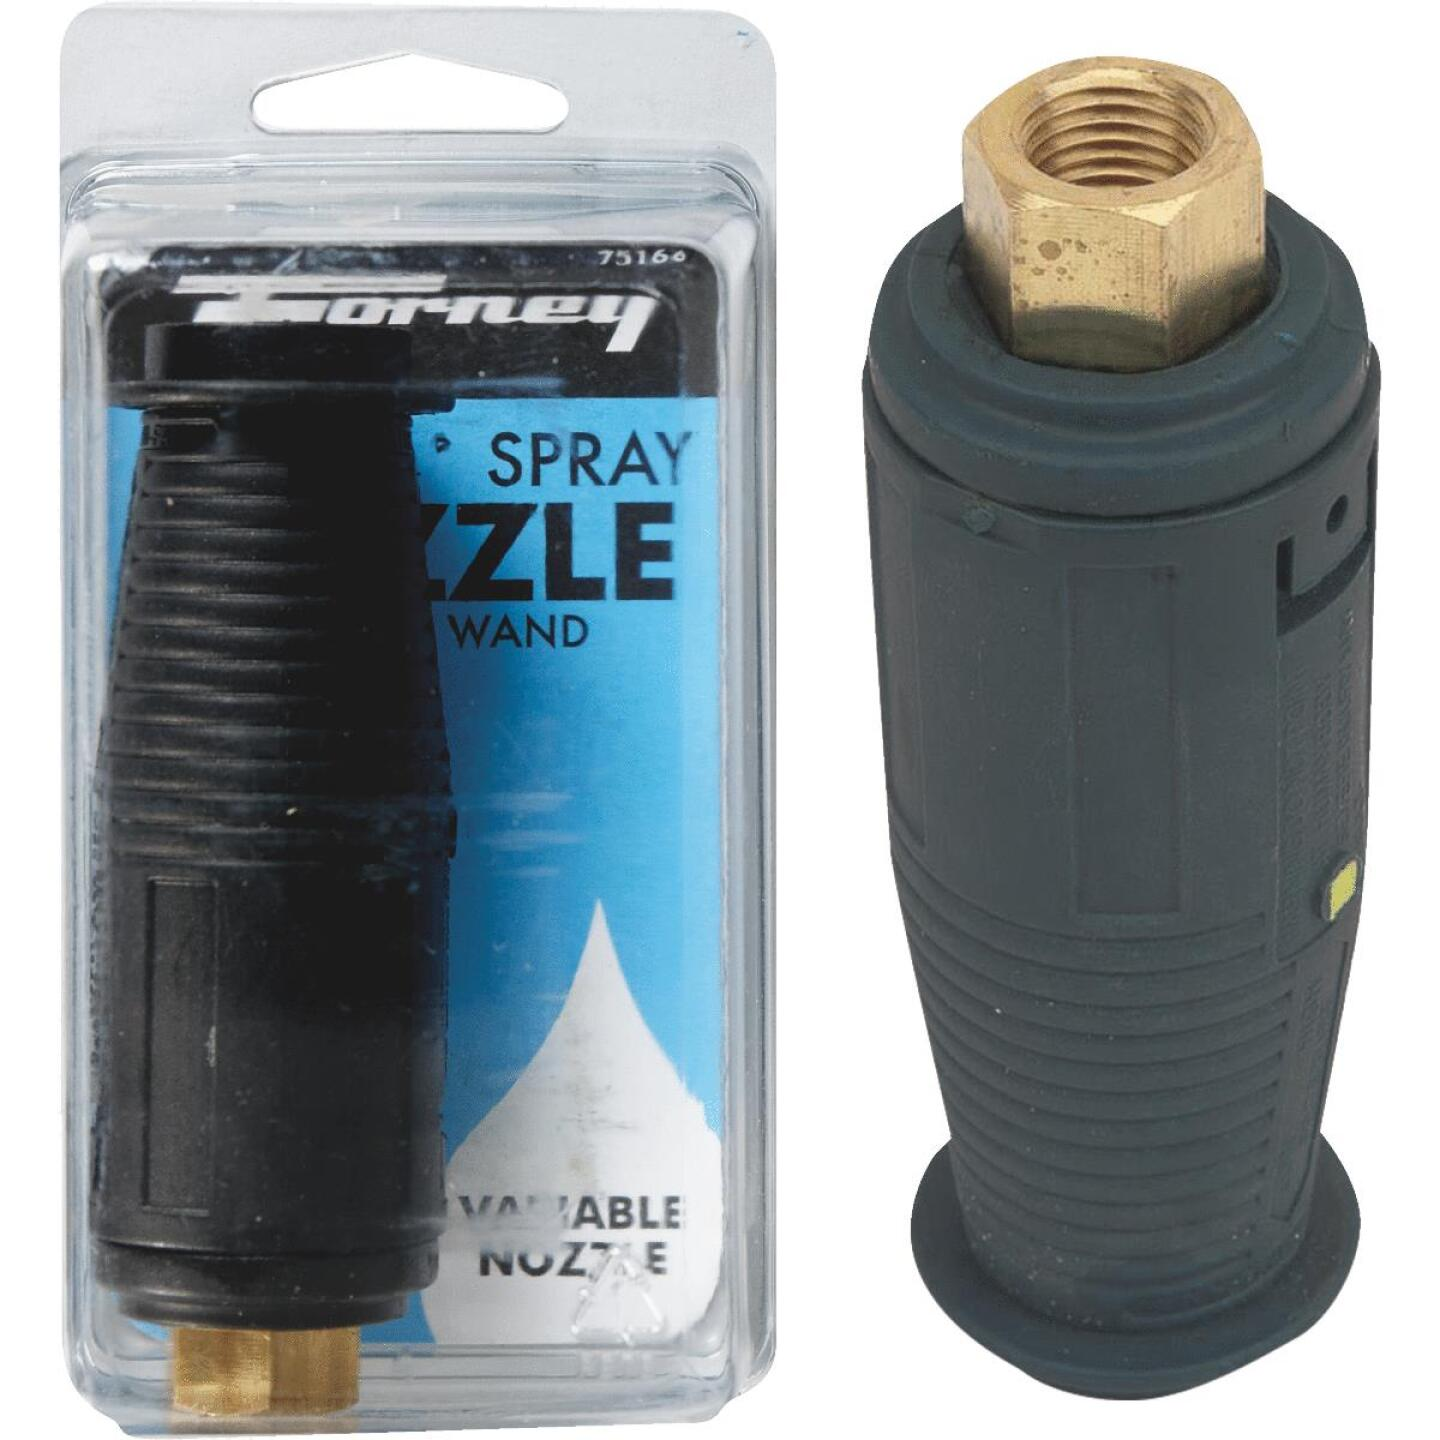 Forney 3200 psi Adjustable Turbo Pressure Washer Nozzle Image 1